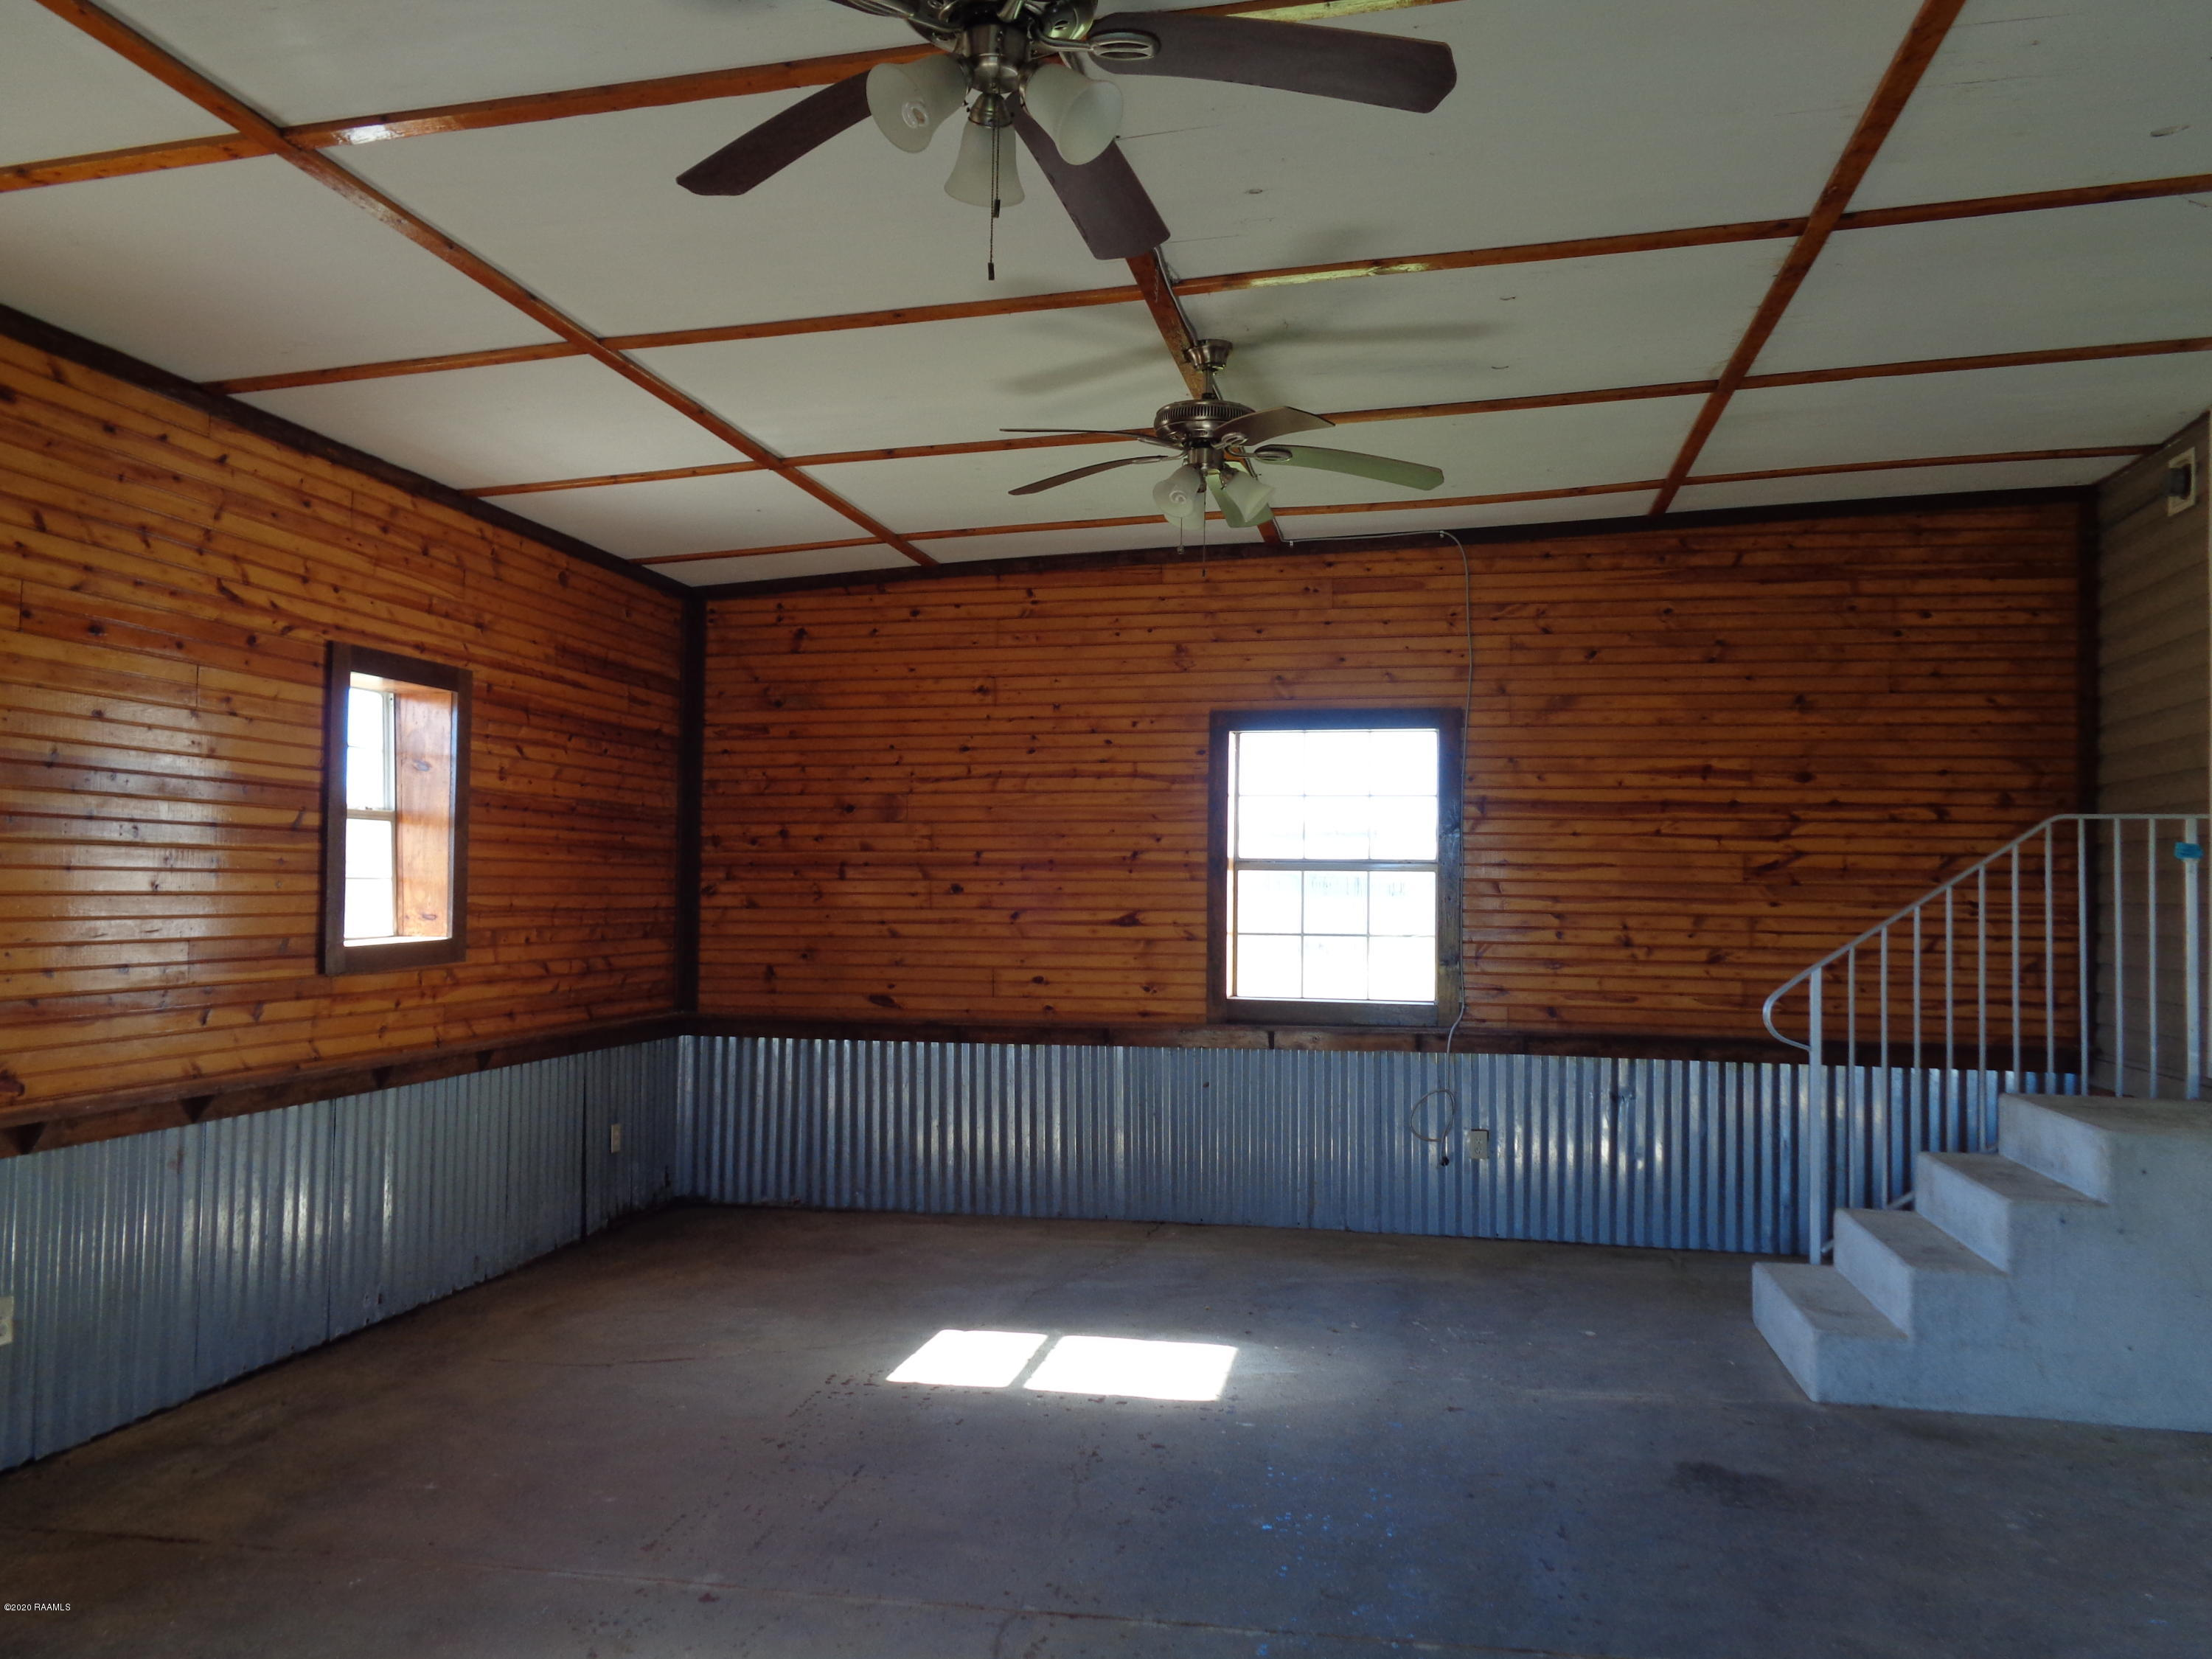 1268 Wilfred Champagne, St. Martinville, LA 70582 Photo #9